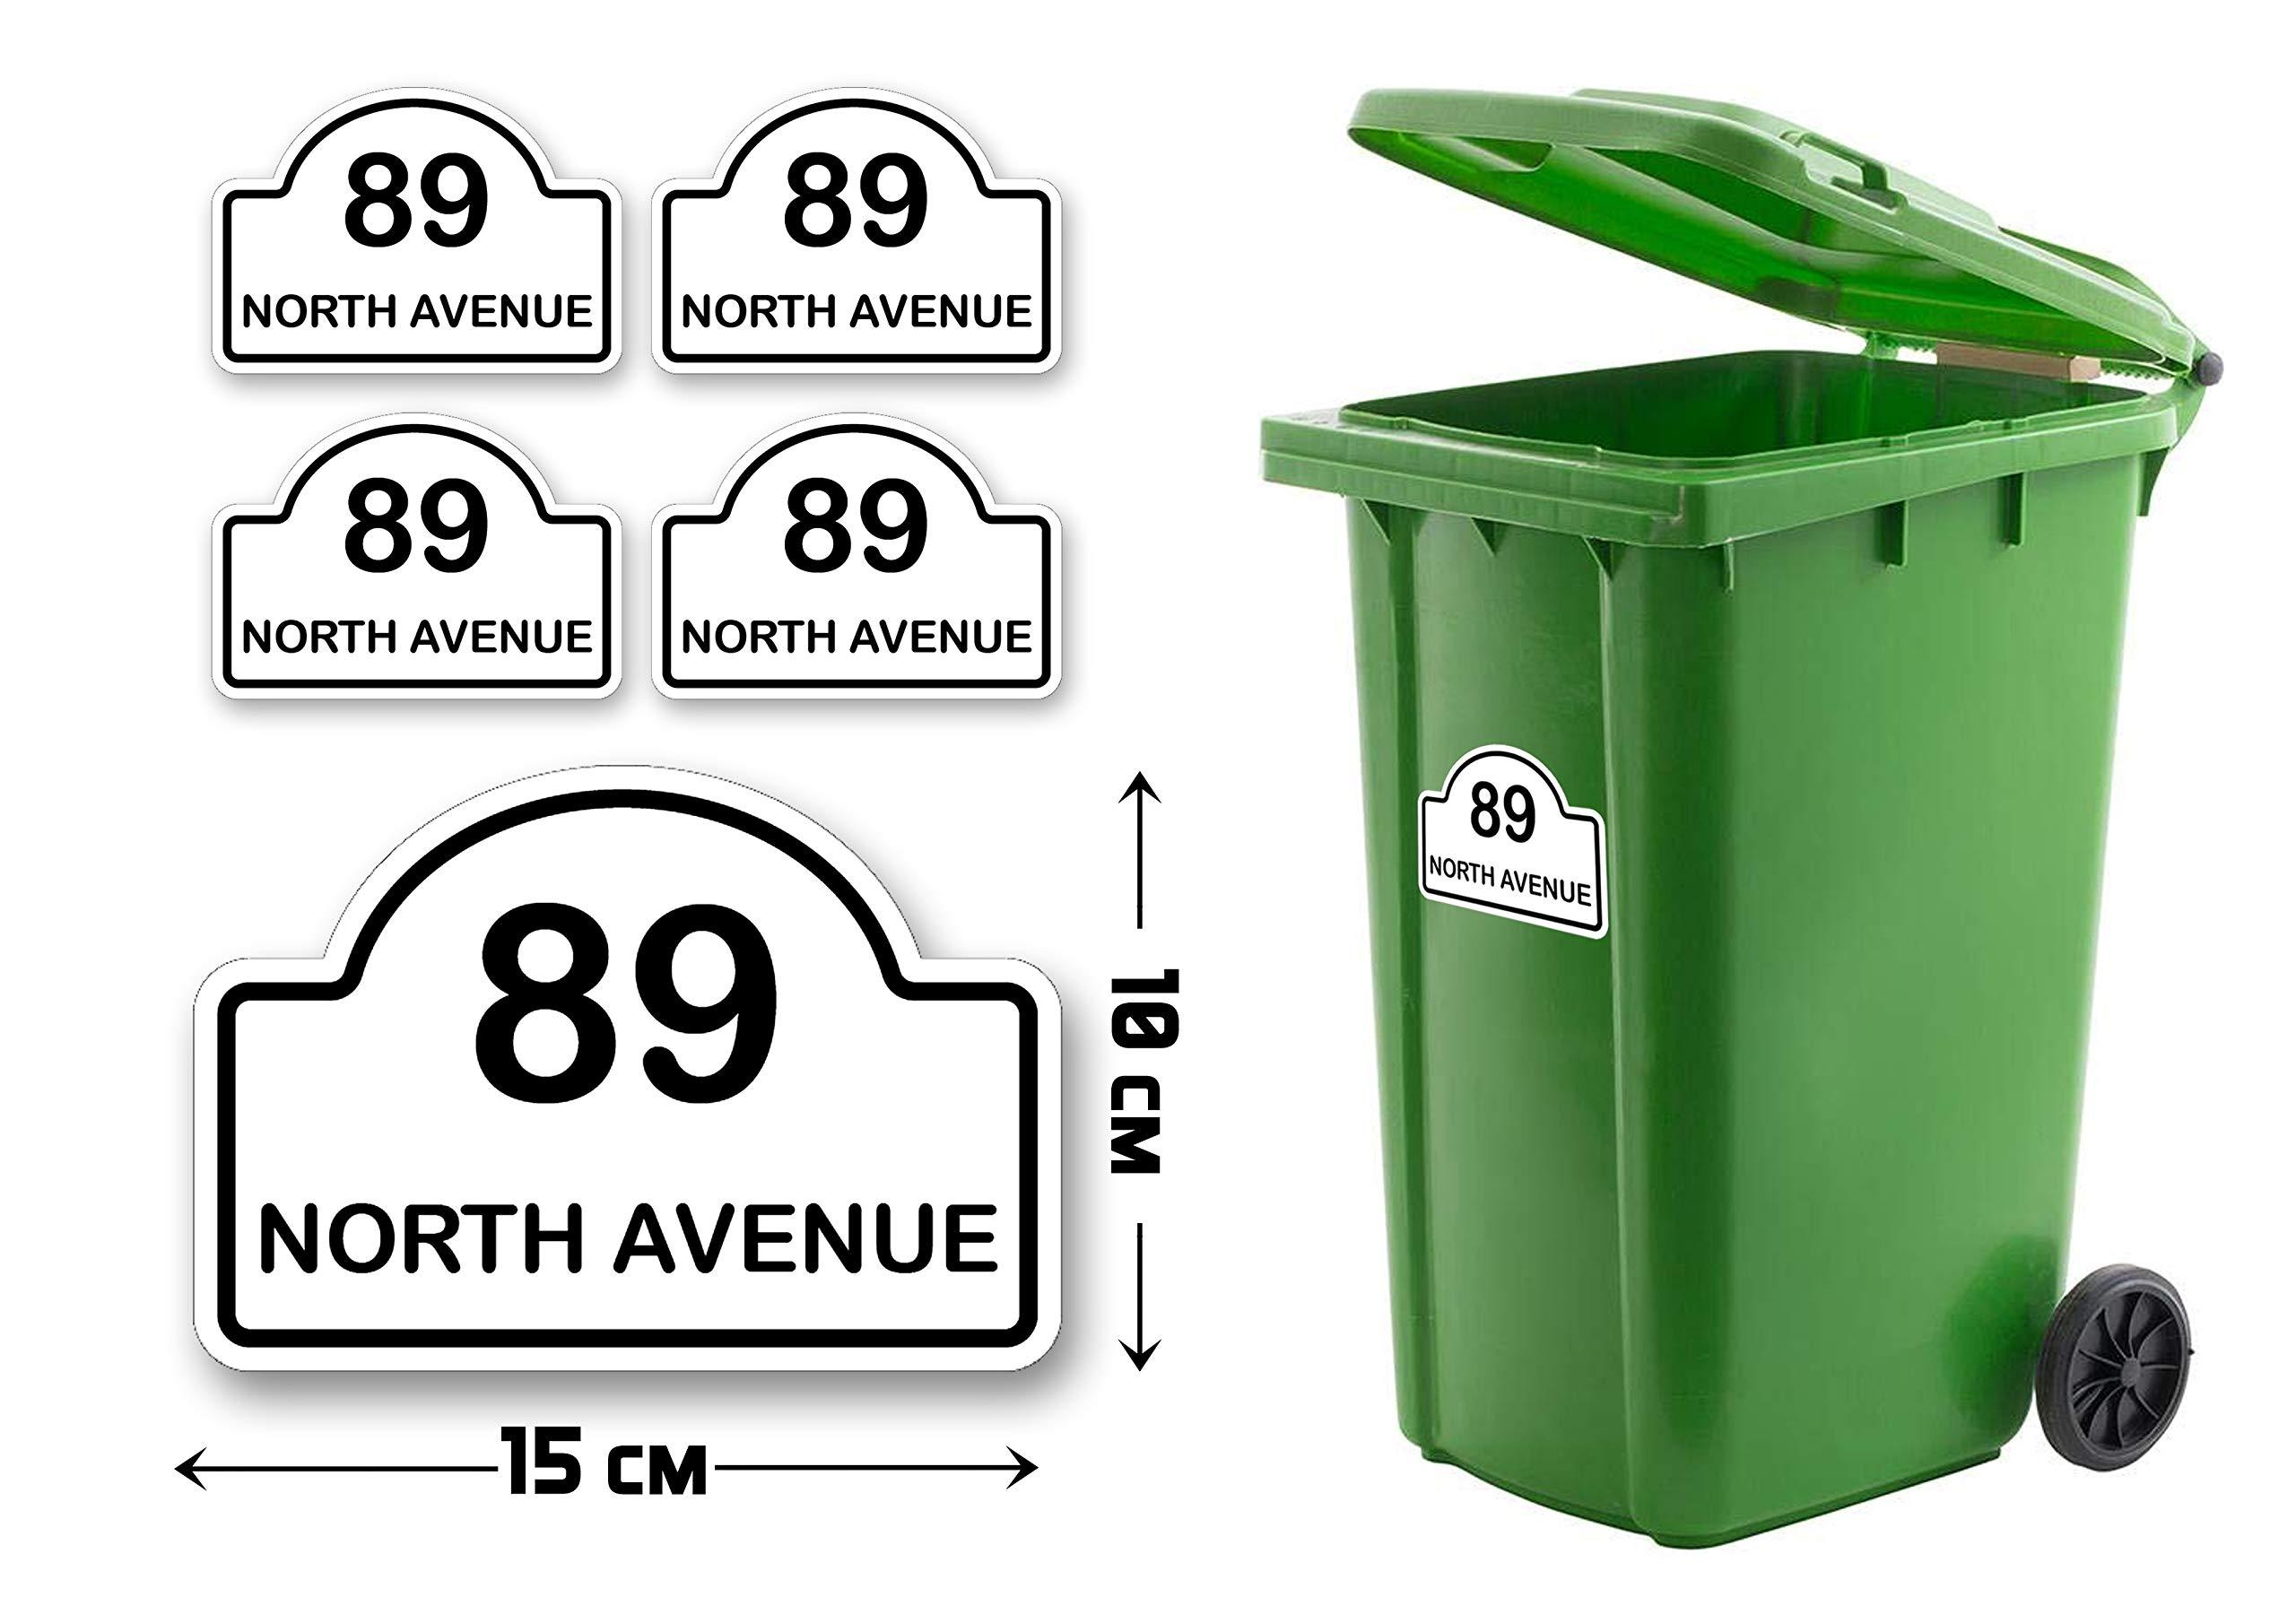 Pack of 4 A6(150 x 100 mm) Size Personalised Custom Wheelie Bin Arch Stickers with Your House Number, Digit, Letter & Road Name,Waterproof Labels or Decals#PBN07 Stickers Limited